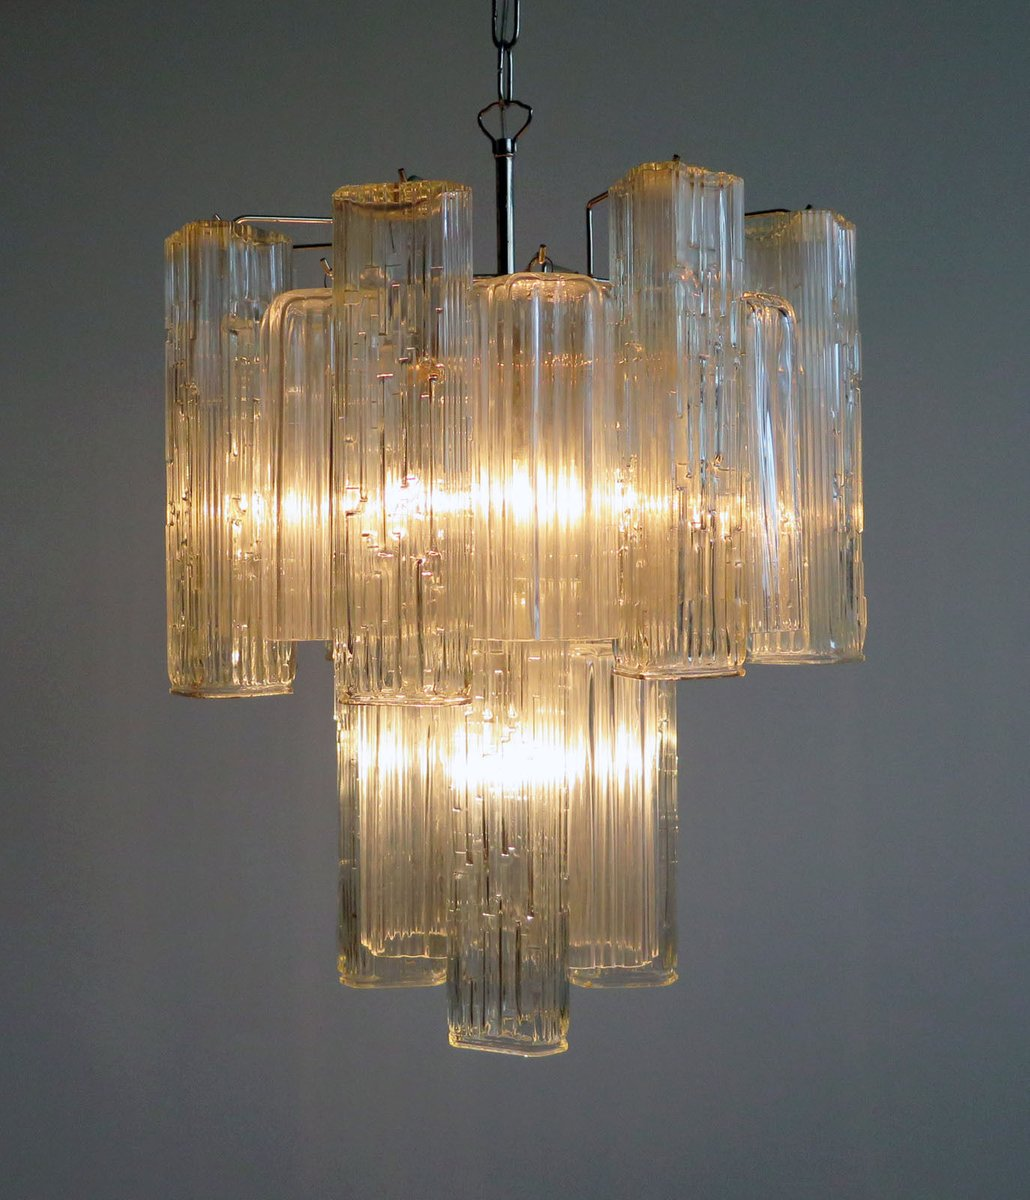 Vintage murano glass chandelier from murano for sale at pamono mozeypictures Image collections